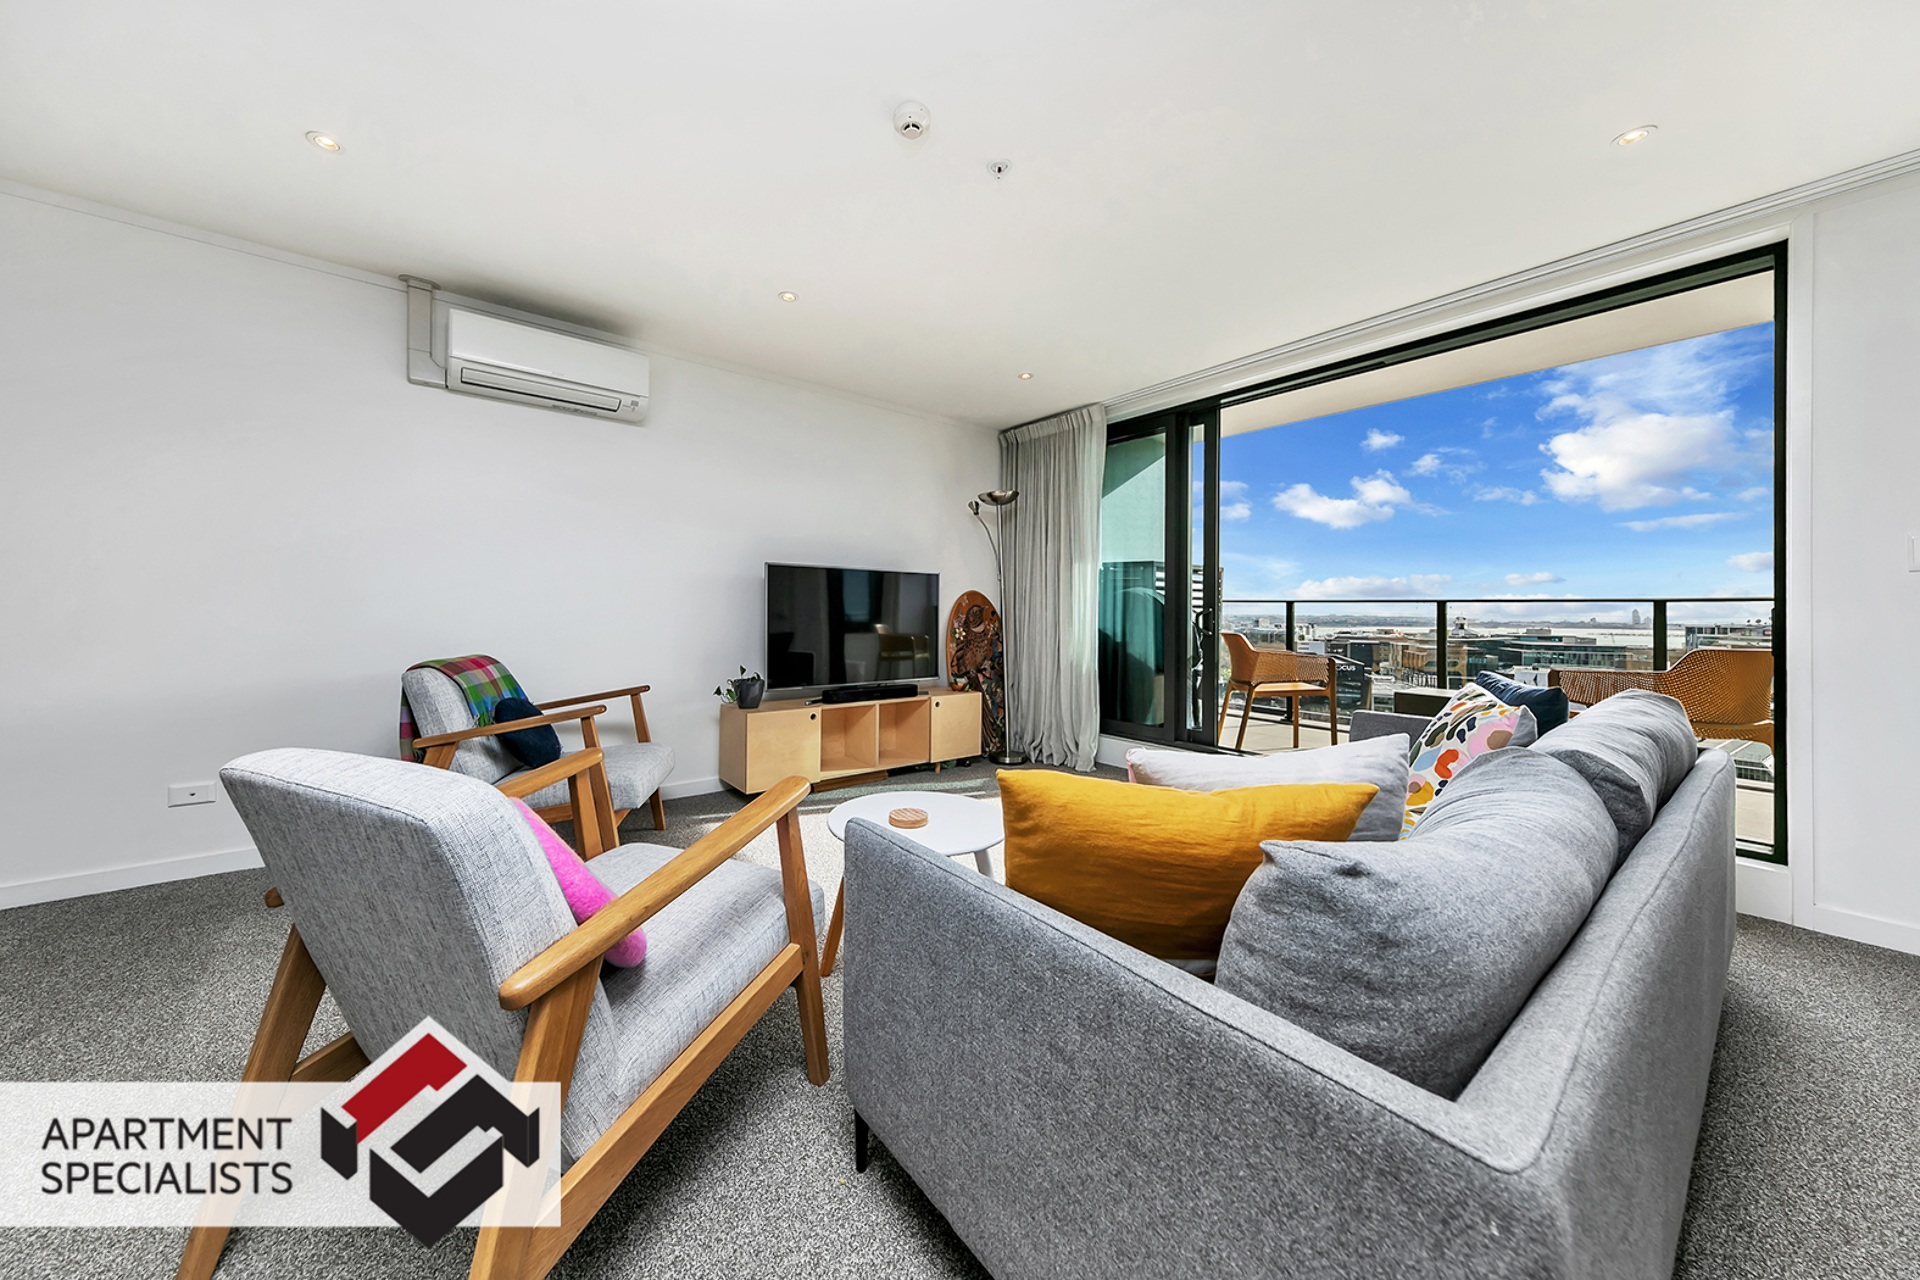 Hero | 145 Nelson Street, City Centre | Apartment Specialists